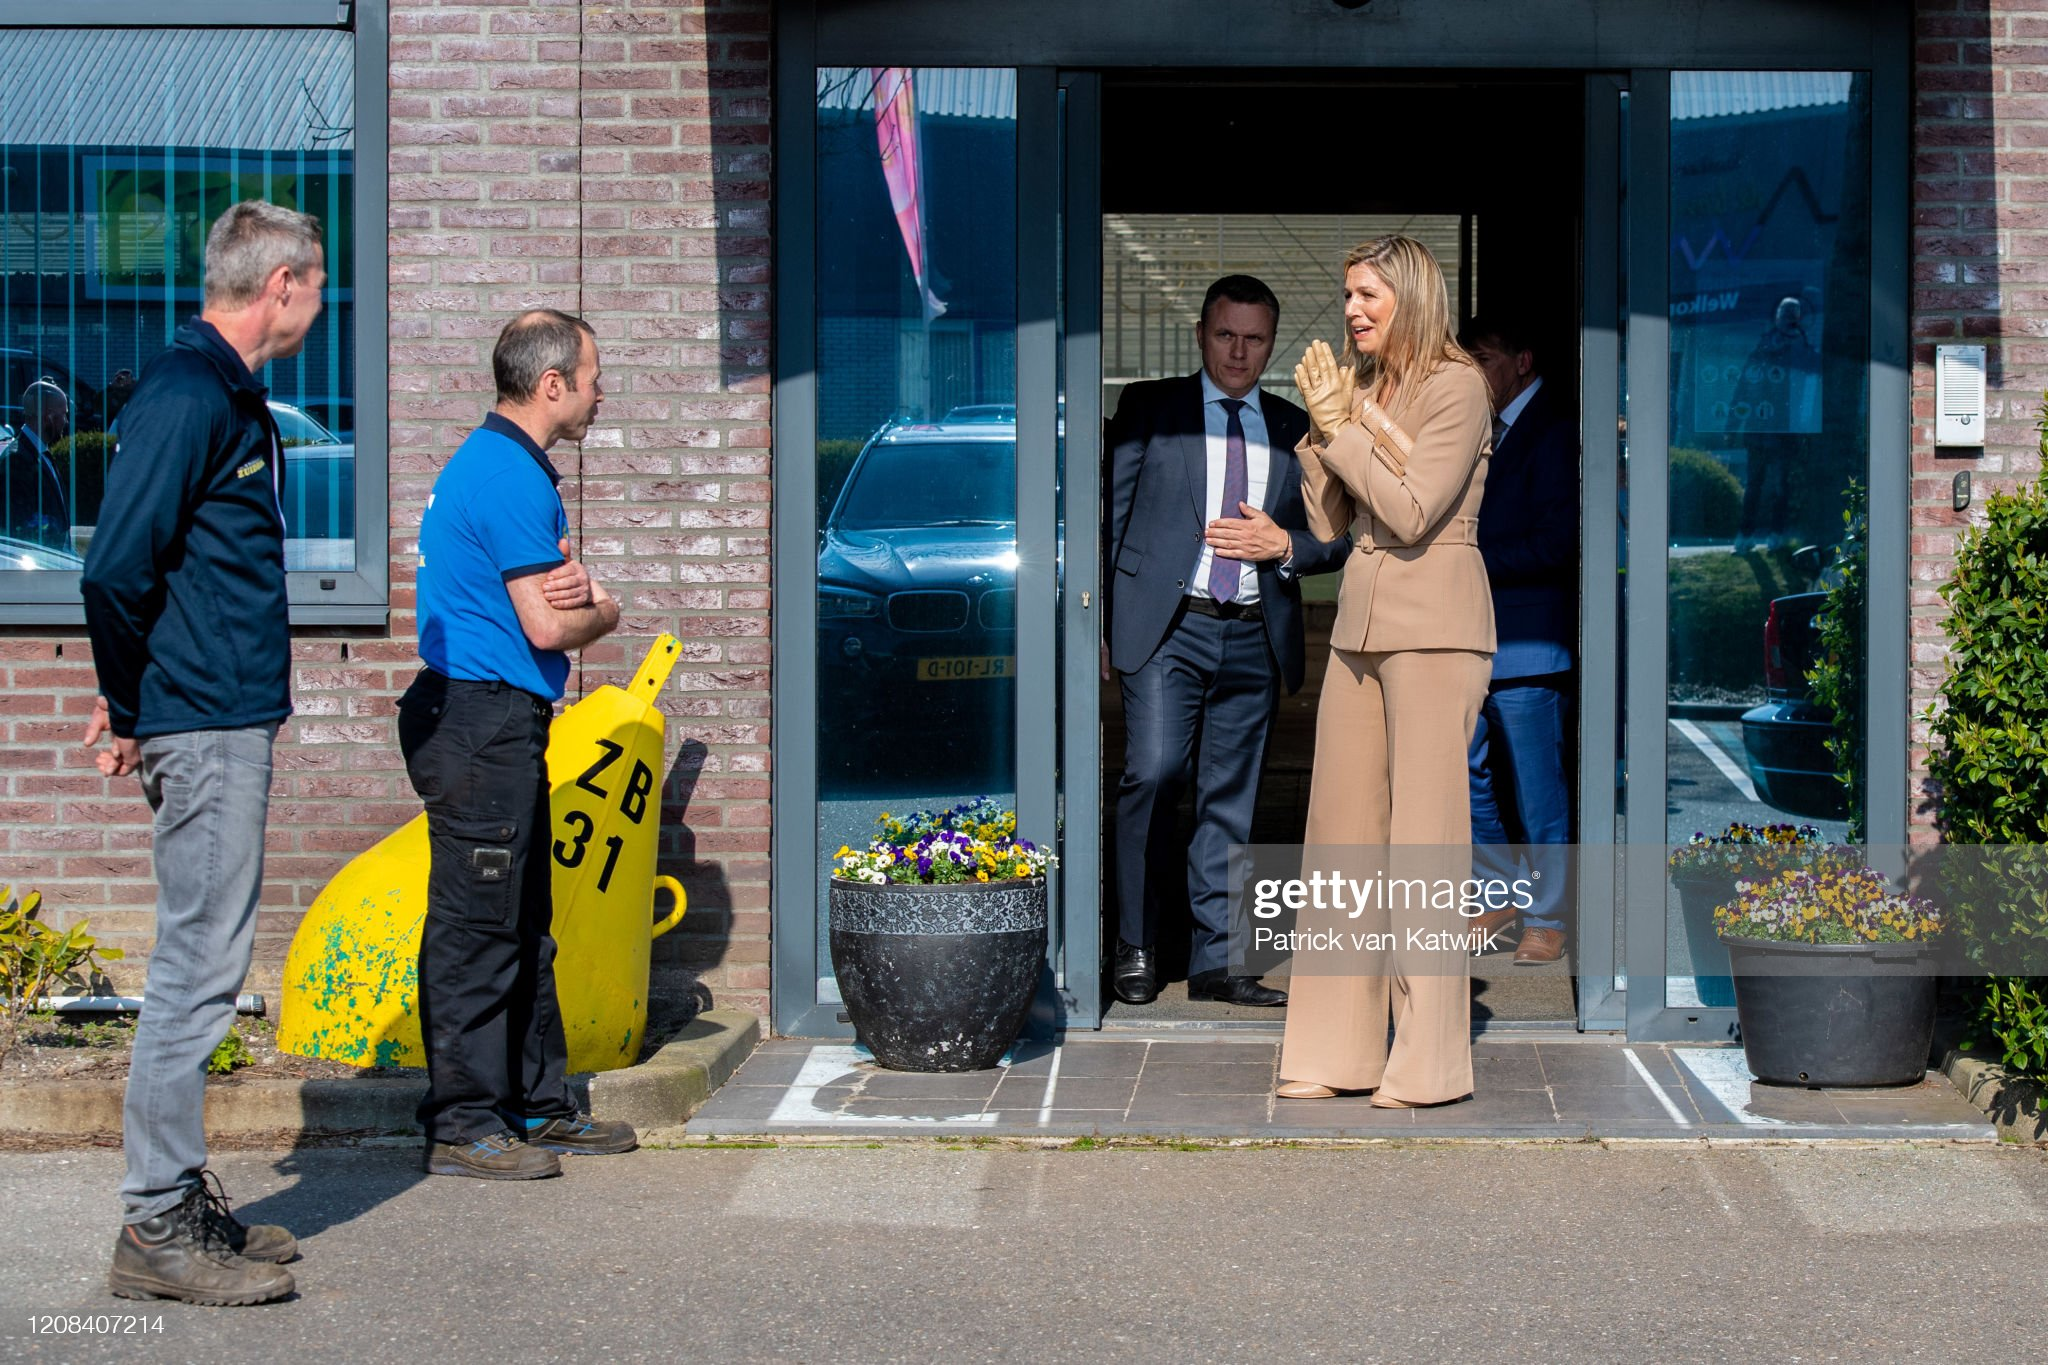 https://media.gettyimages.com/photos/queen-maxima-of-the-netherlands-visits-zuidbaak-floriculture-company-picture-id1208407214?s=2048x2048